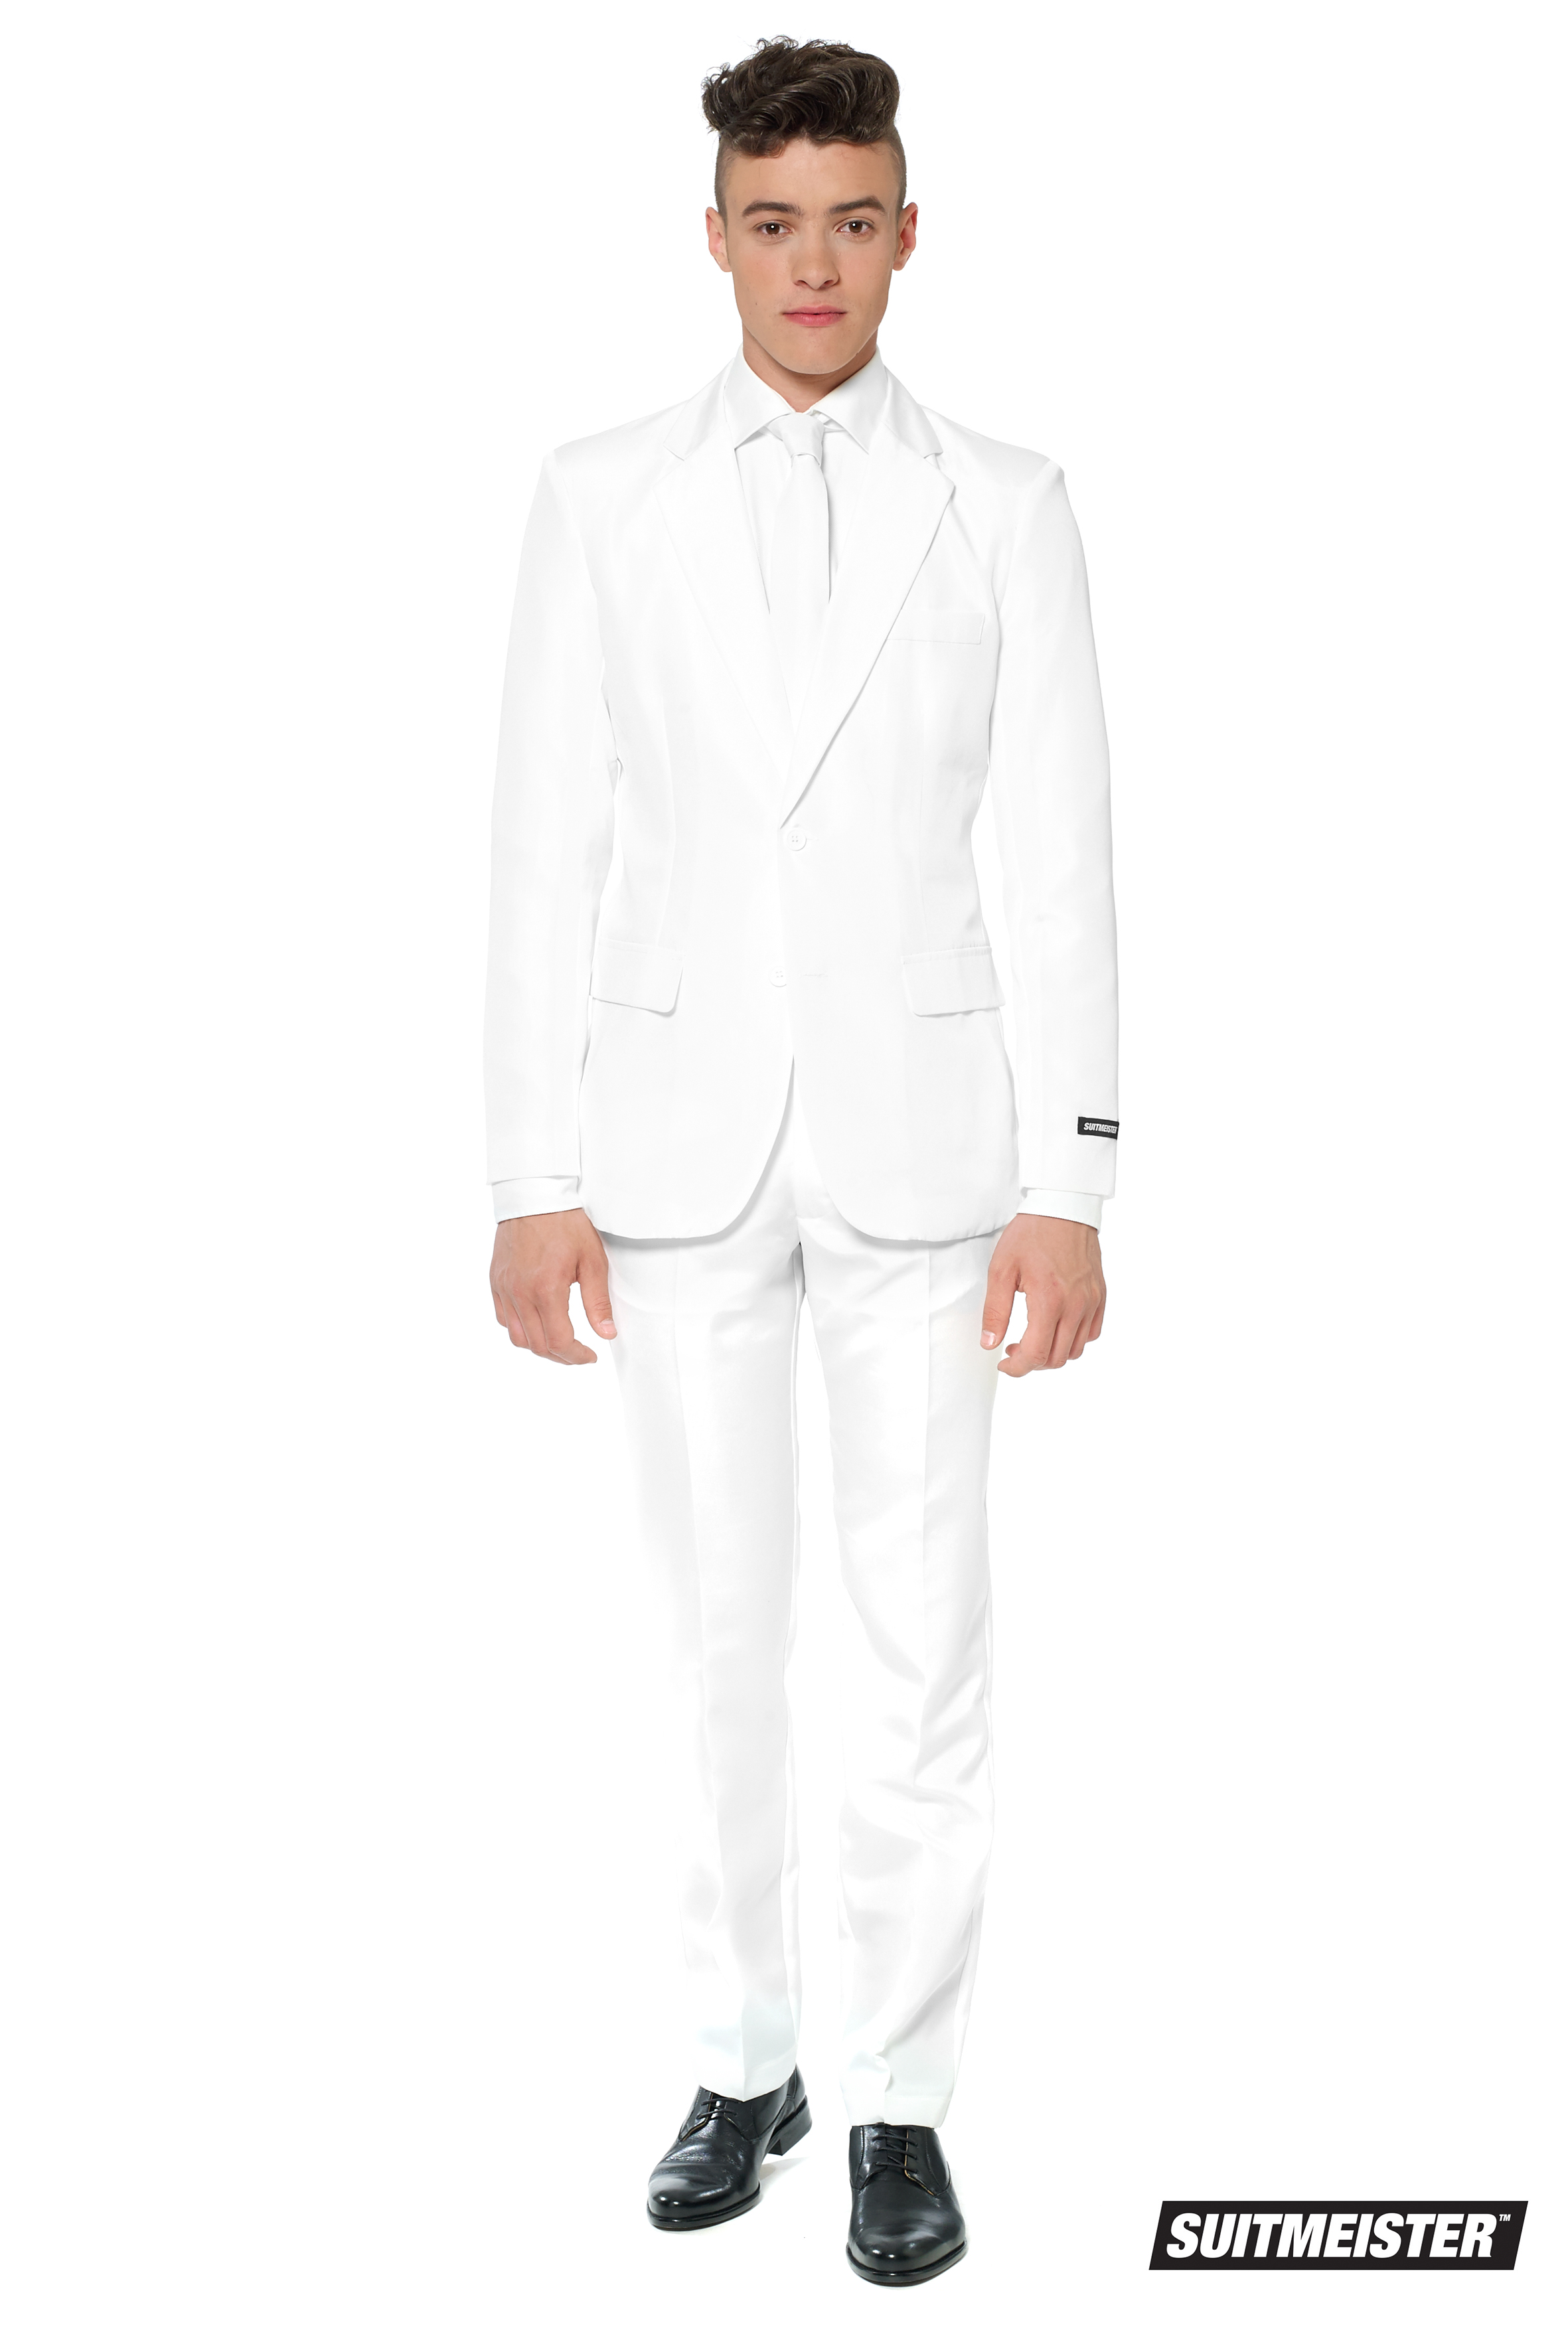 Suitmeister Men's Solid White Solid Suit